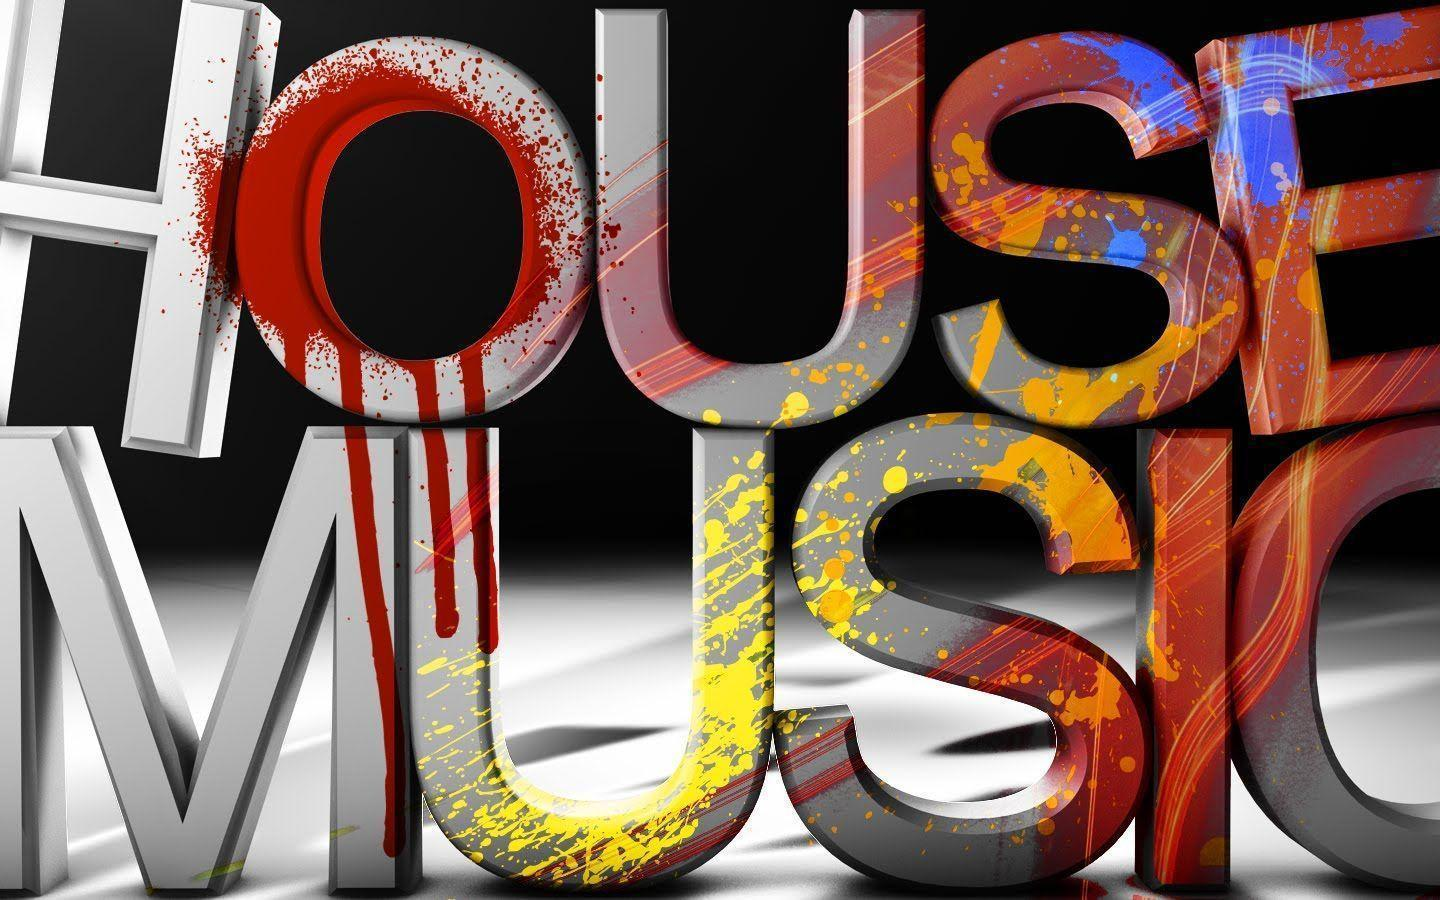 House music dj wallpapers wallpaper cave for Deep house music djs